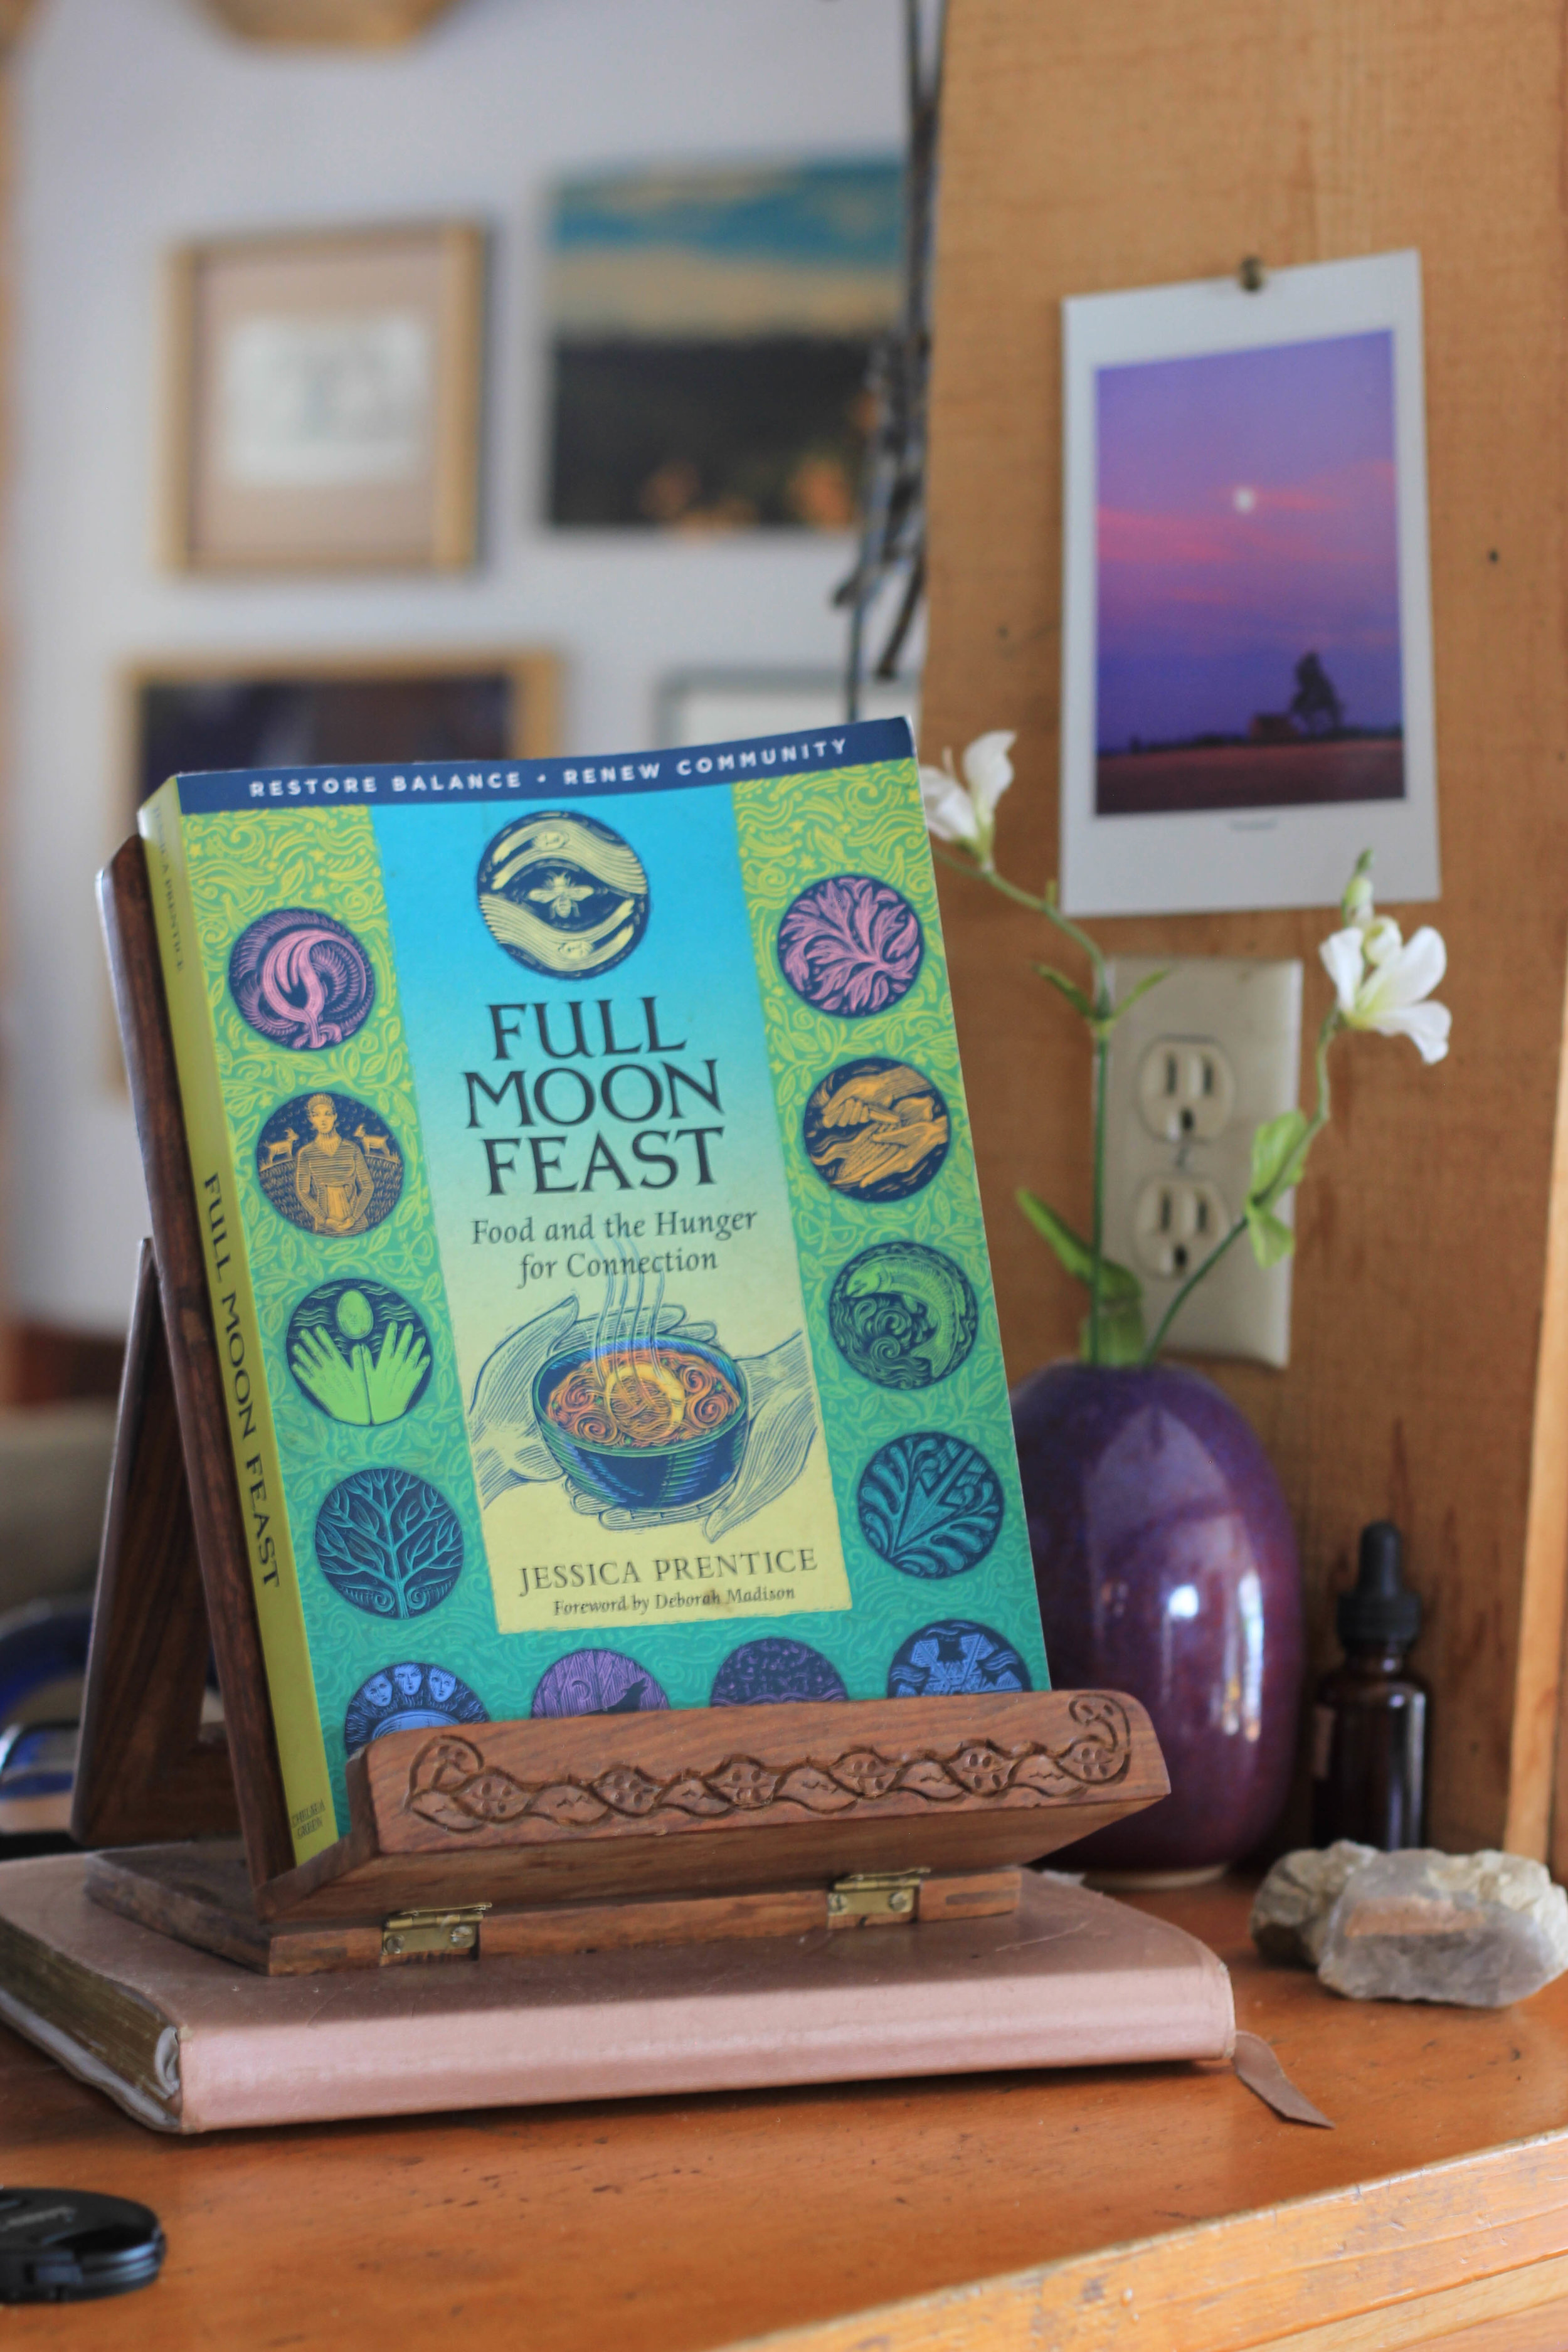 Moonthly Reading - Full Moon Feast: Food and the Hunger for Connection by Jessica Prentice